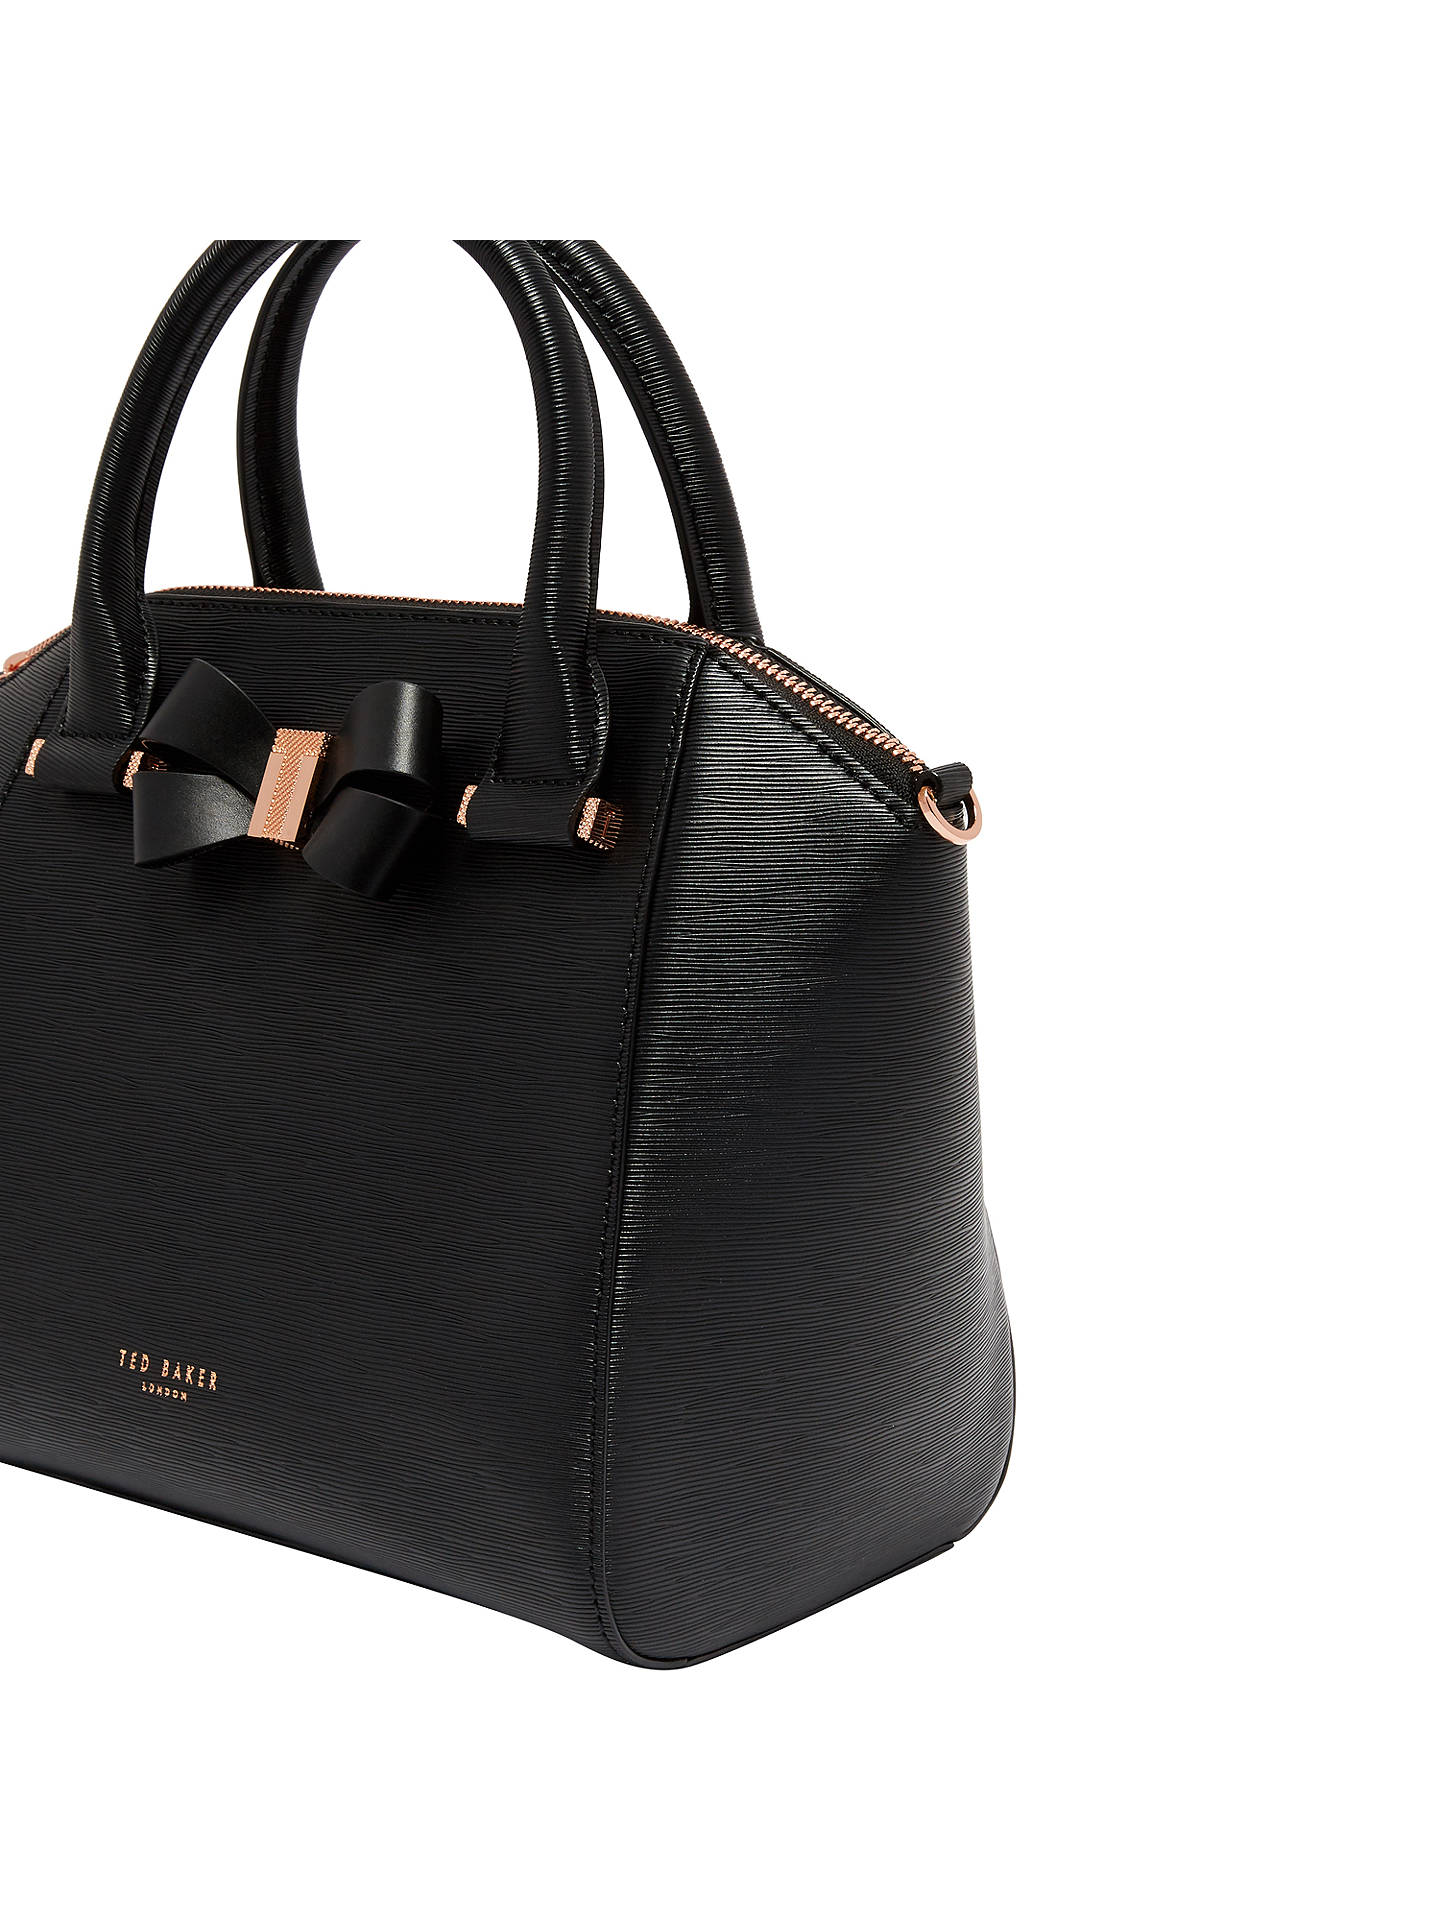 03c75b1aad9 Ted Baker Bow Detail Leather Small Tote Bag, Black